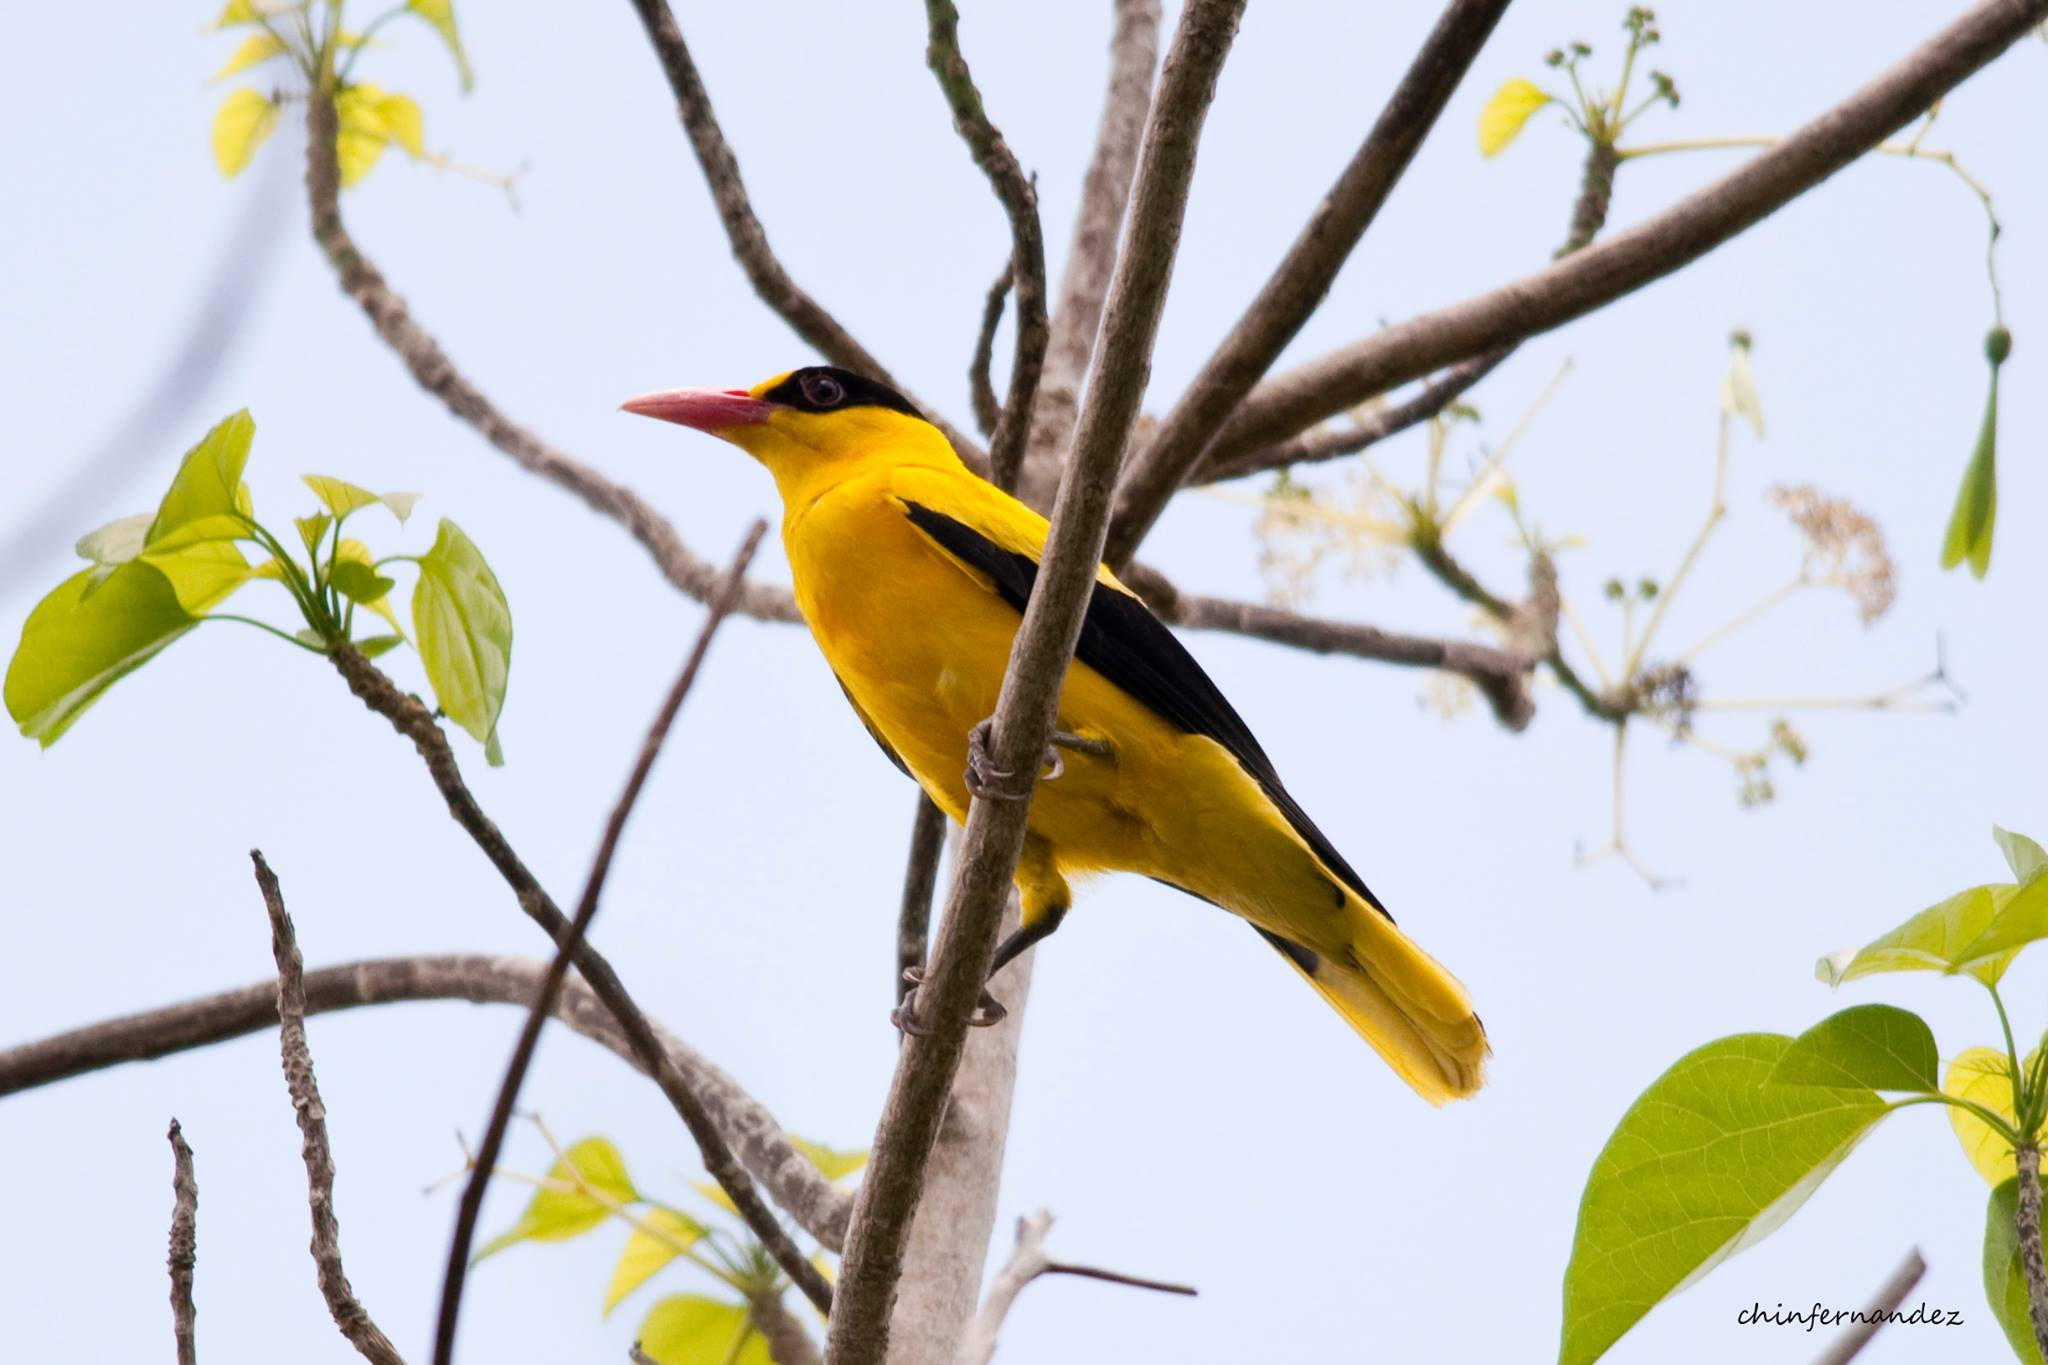 The brightly-colored Black-naped Oriole can be quite difficult to find even if it is bright yellow. Photo by Chin Fernandez.